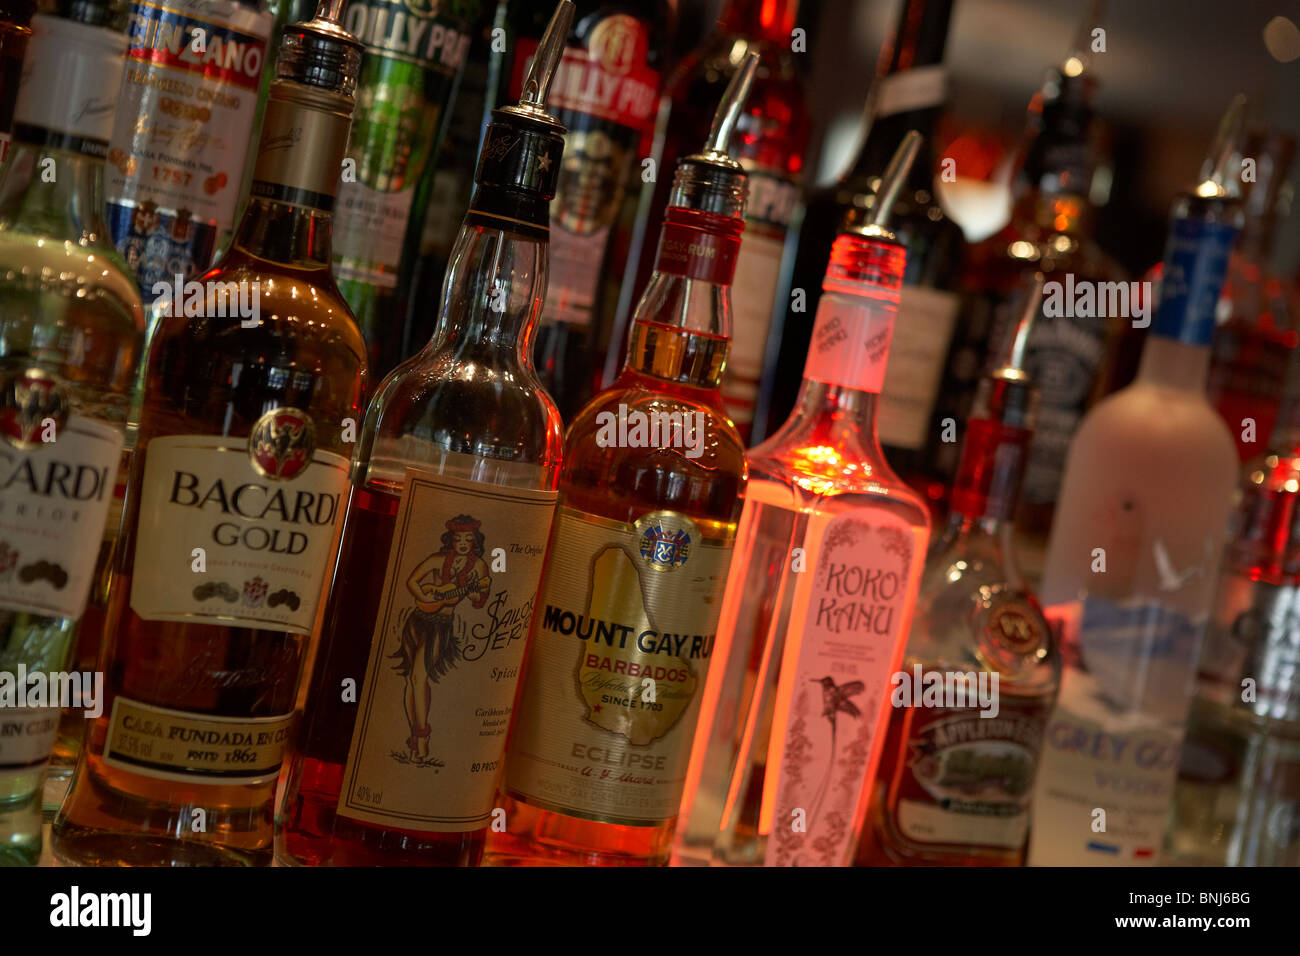 BOTTLES OF SPIRITS IN COCKTAIL BAR - Stock Image